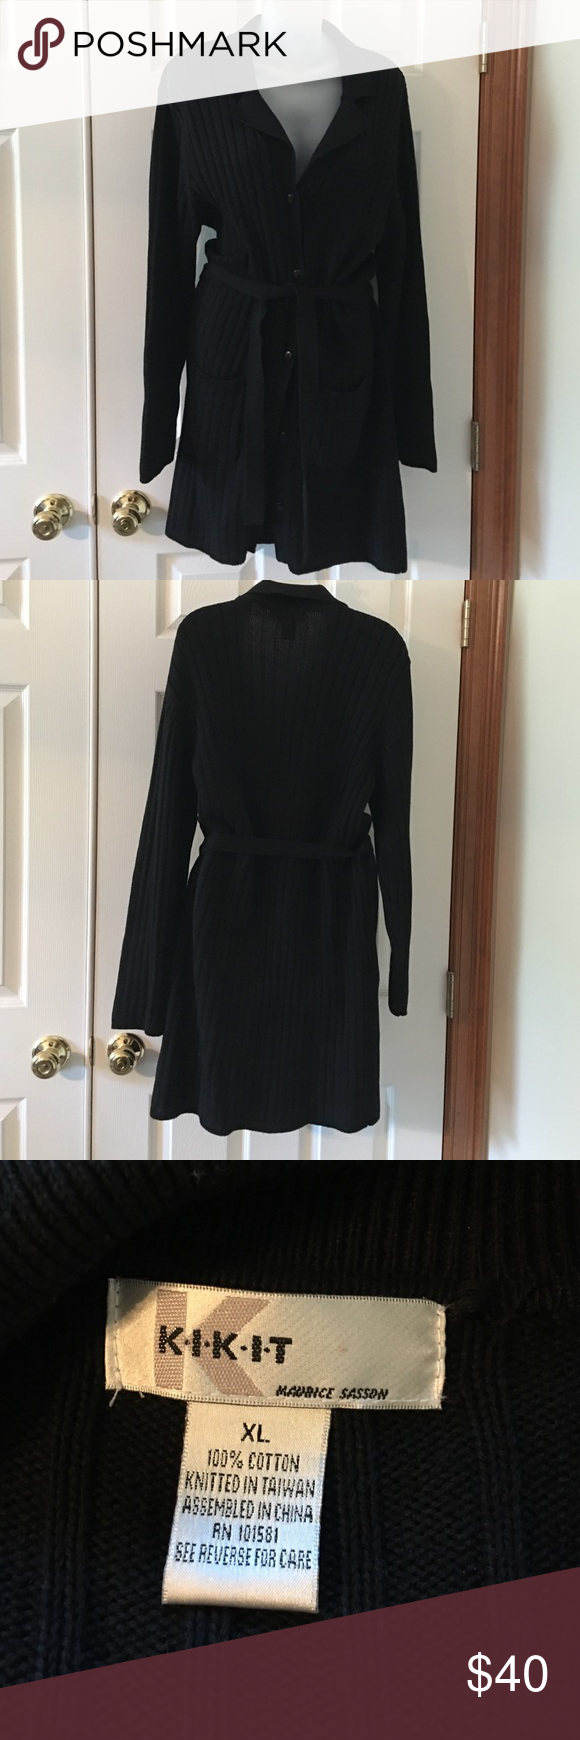 ❄️Beautiful black sweater coat. 100% cotton | Conditioning and ...